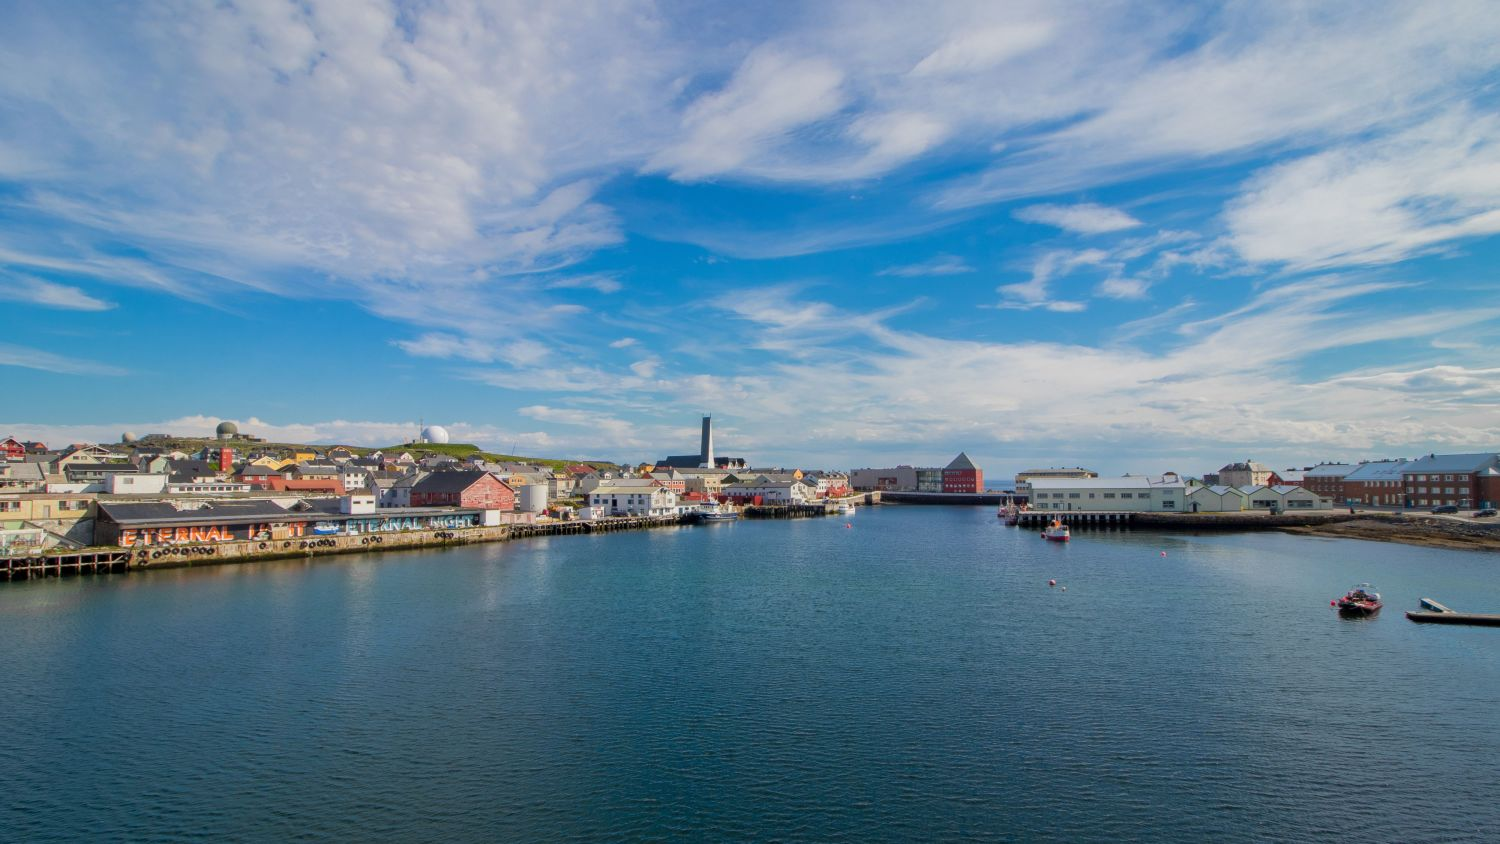 Port of Vardø seen from the seaside.